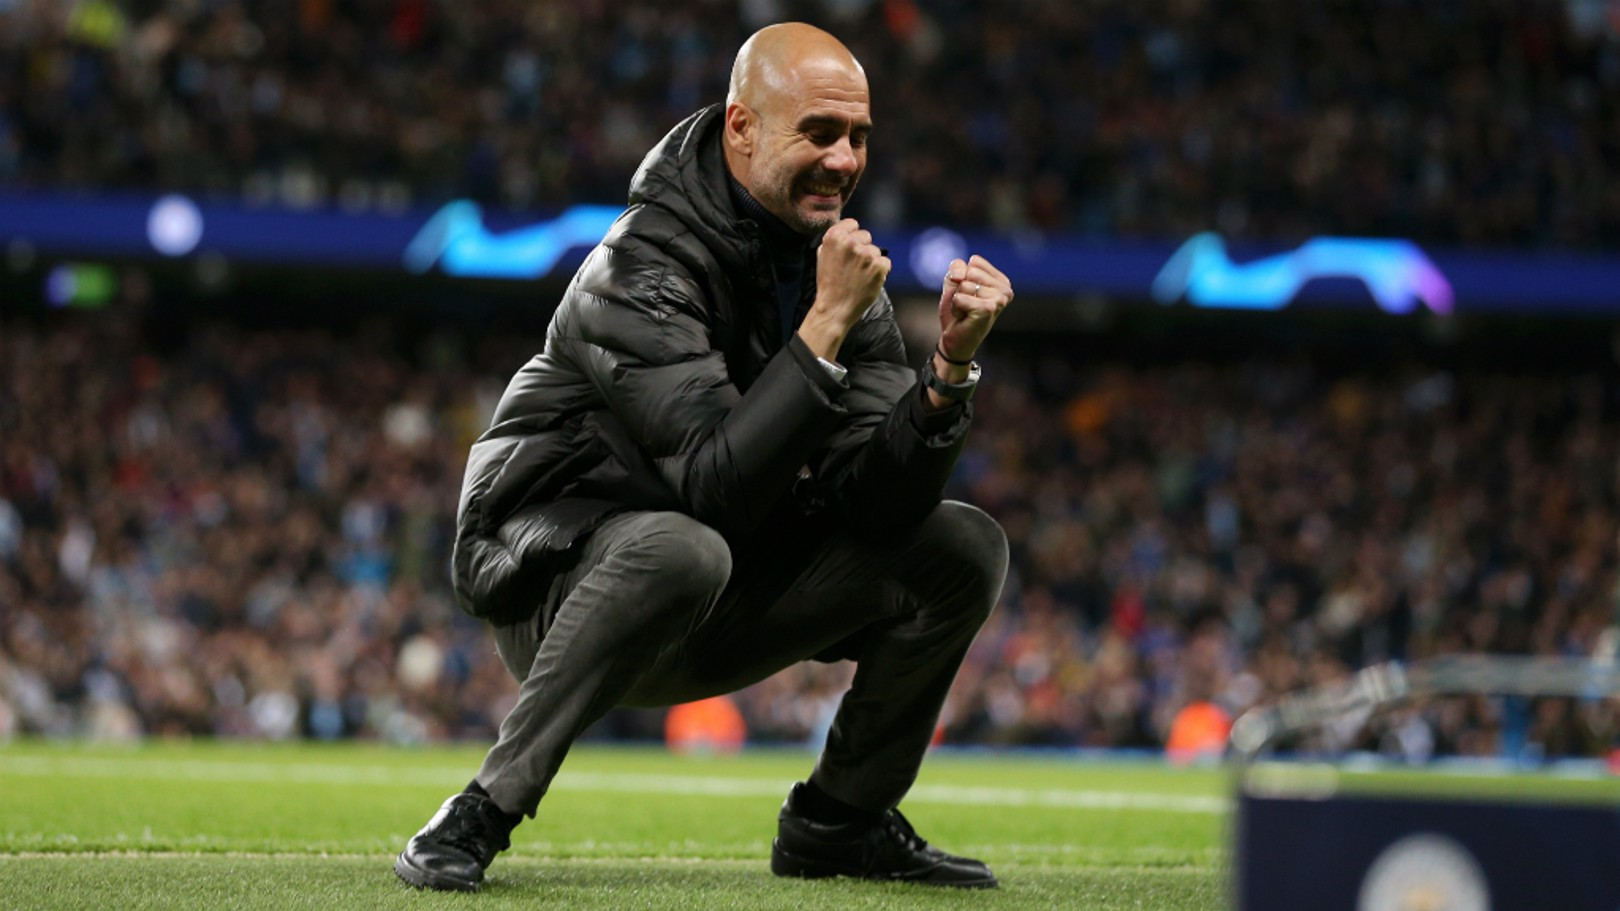 GENIUS MOVES: Pep Guardiola's tactical changes were vital for City to claim all three points